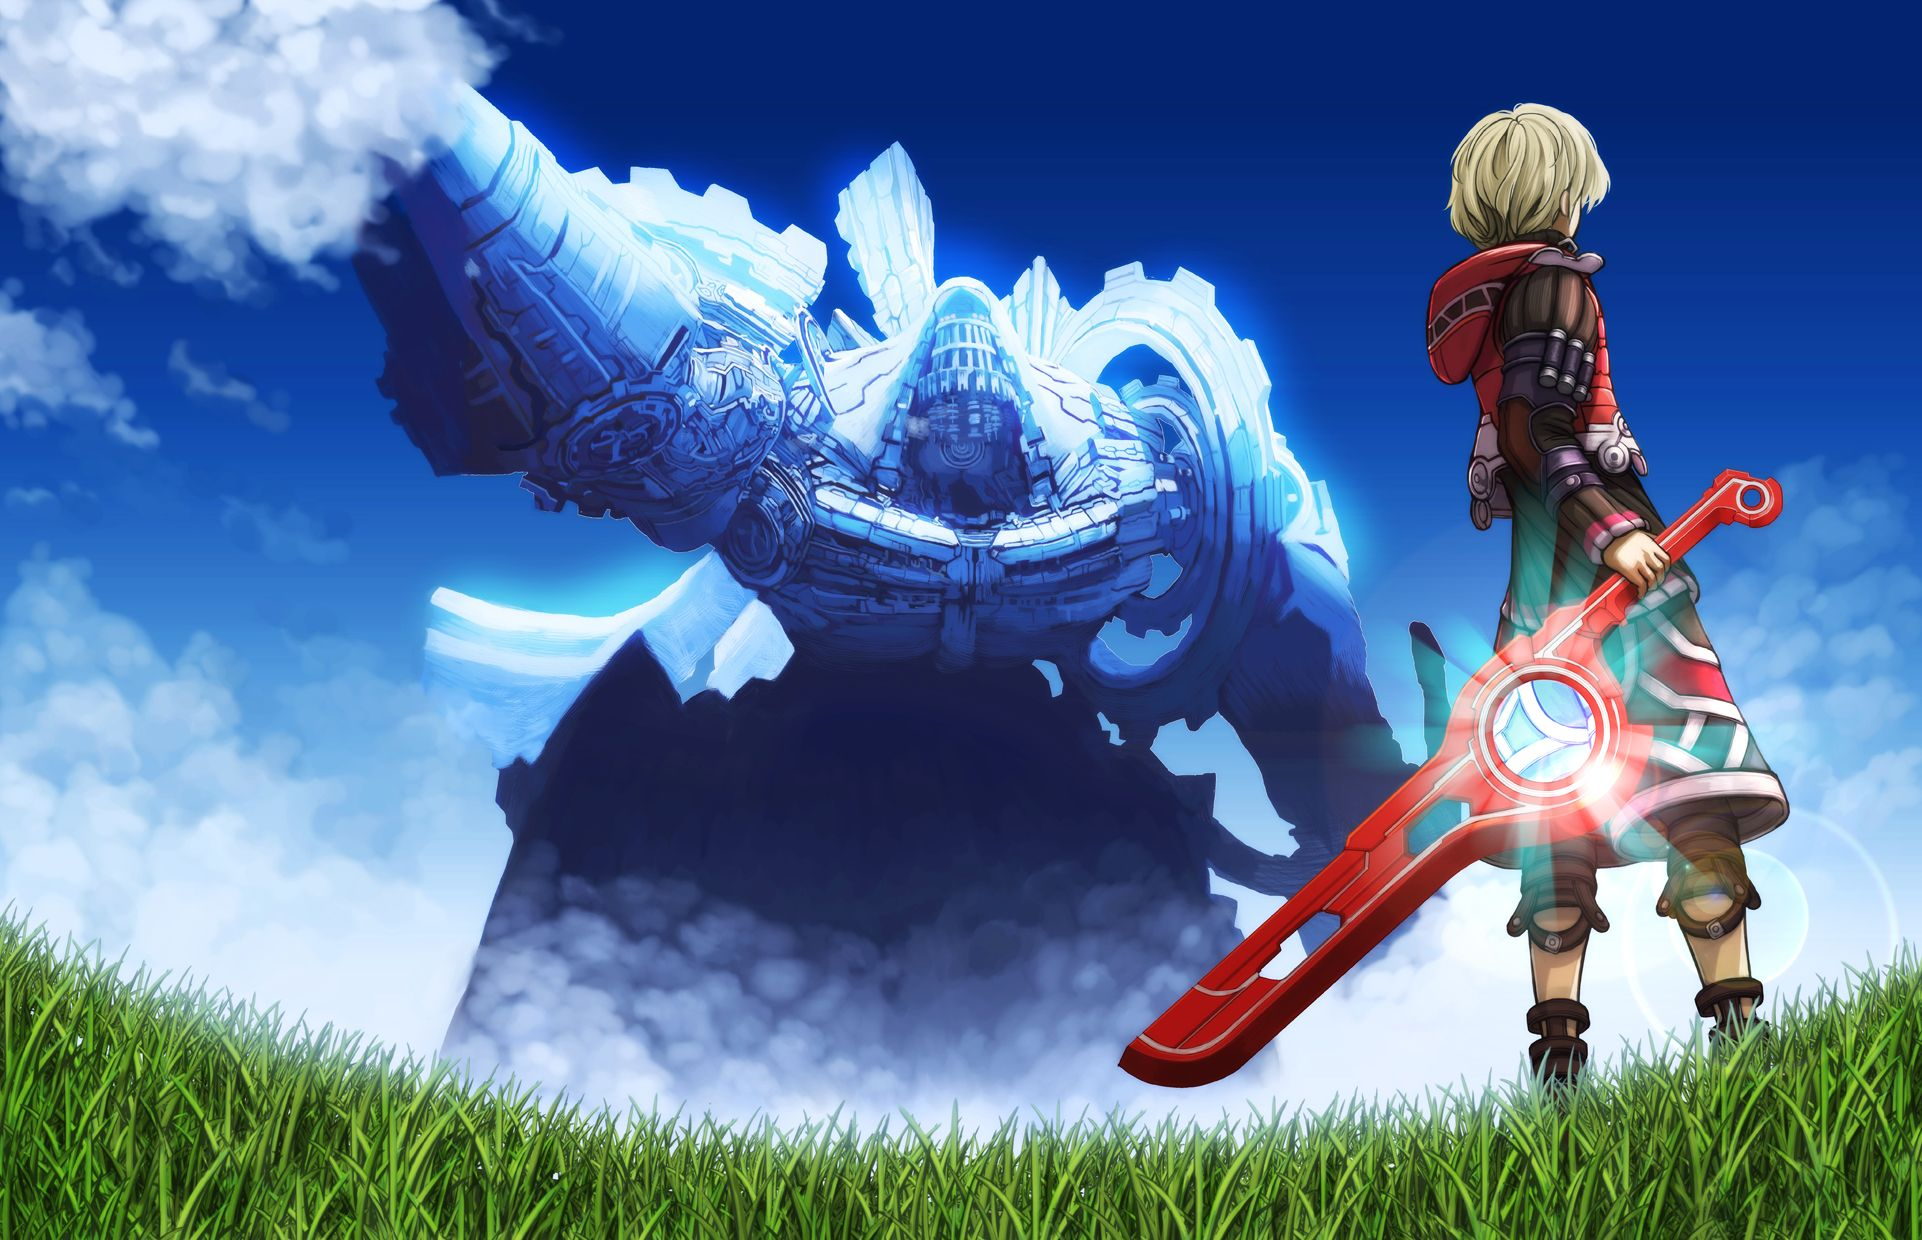 Shulk Xenoblade Xenoblade Chronicles 2 Xenoblade Chronicles Background Images